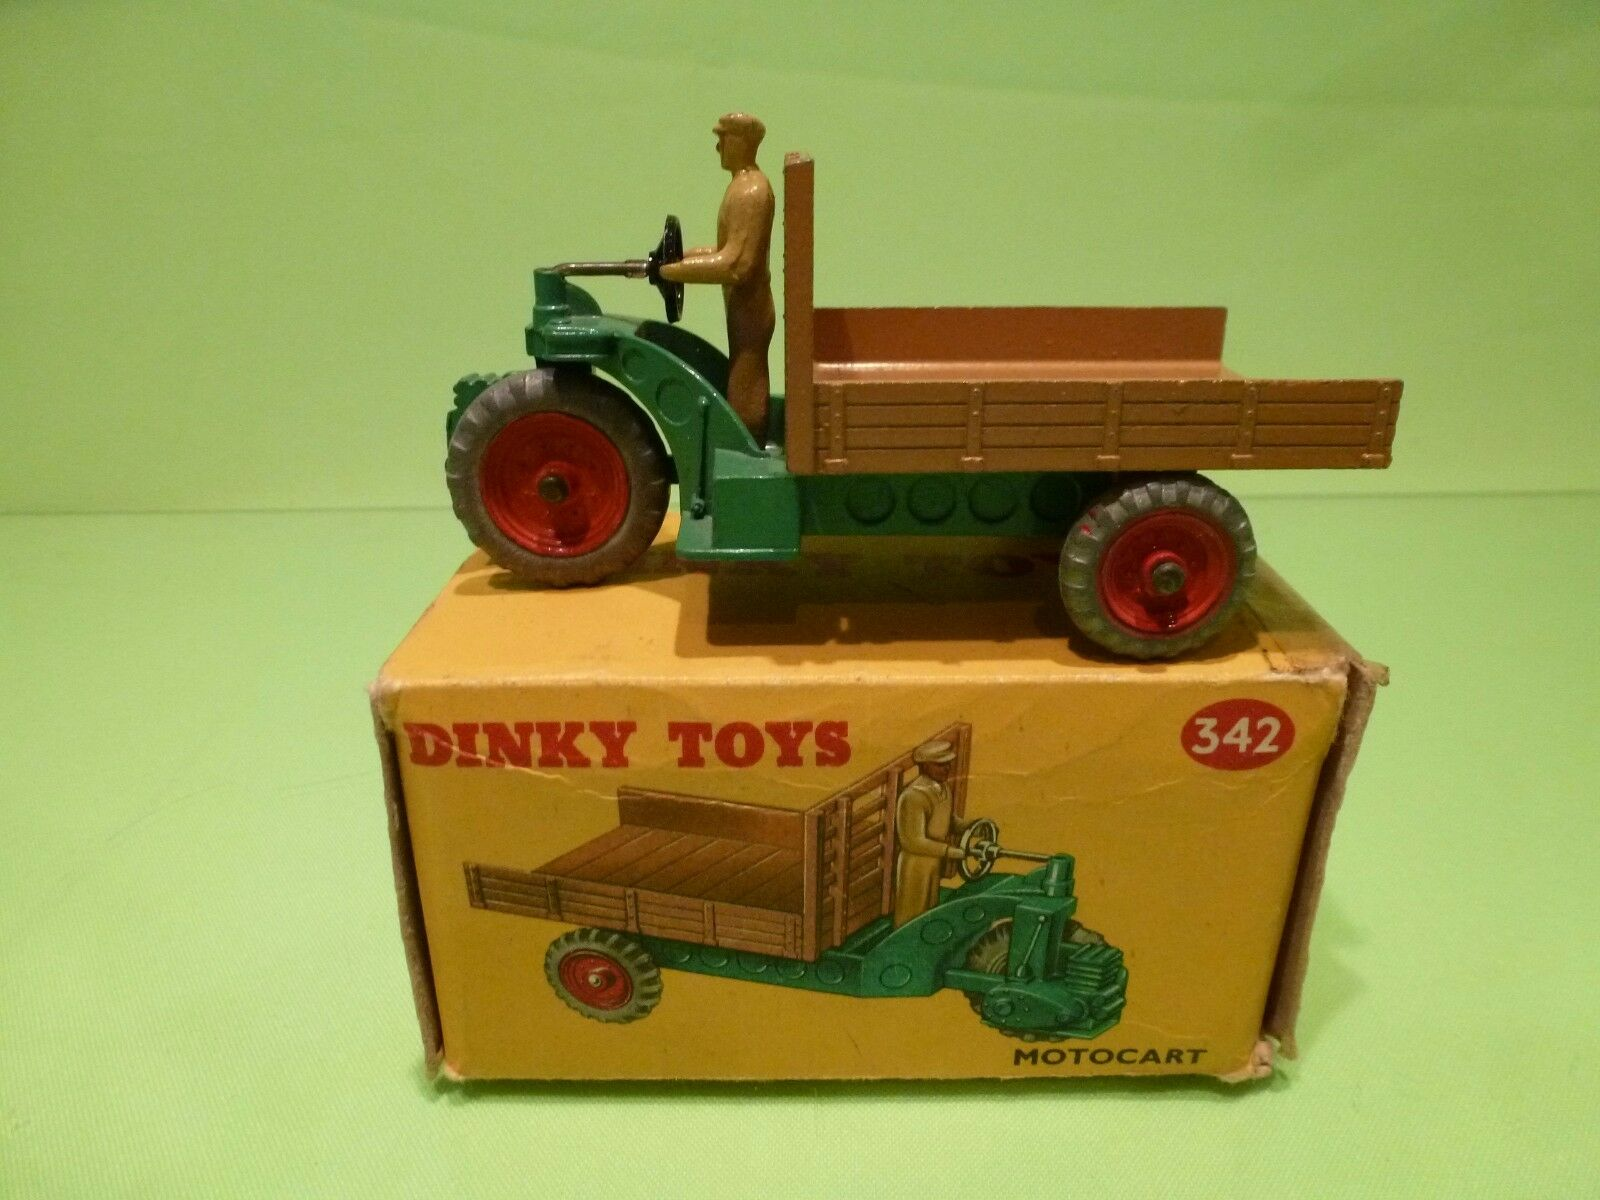 DINKY TOYS 27G 342 MOTOCART MOTOCARRETA - vert + marron - NEAR MINT IN BOX